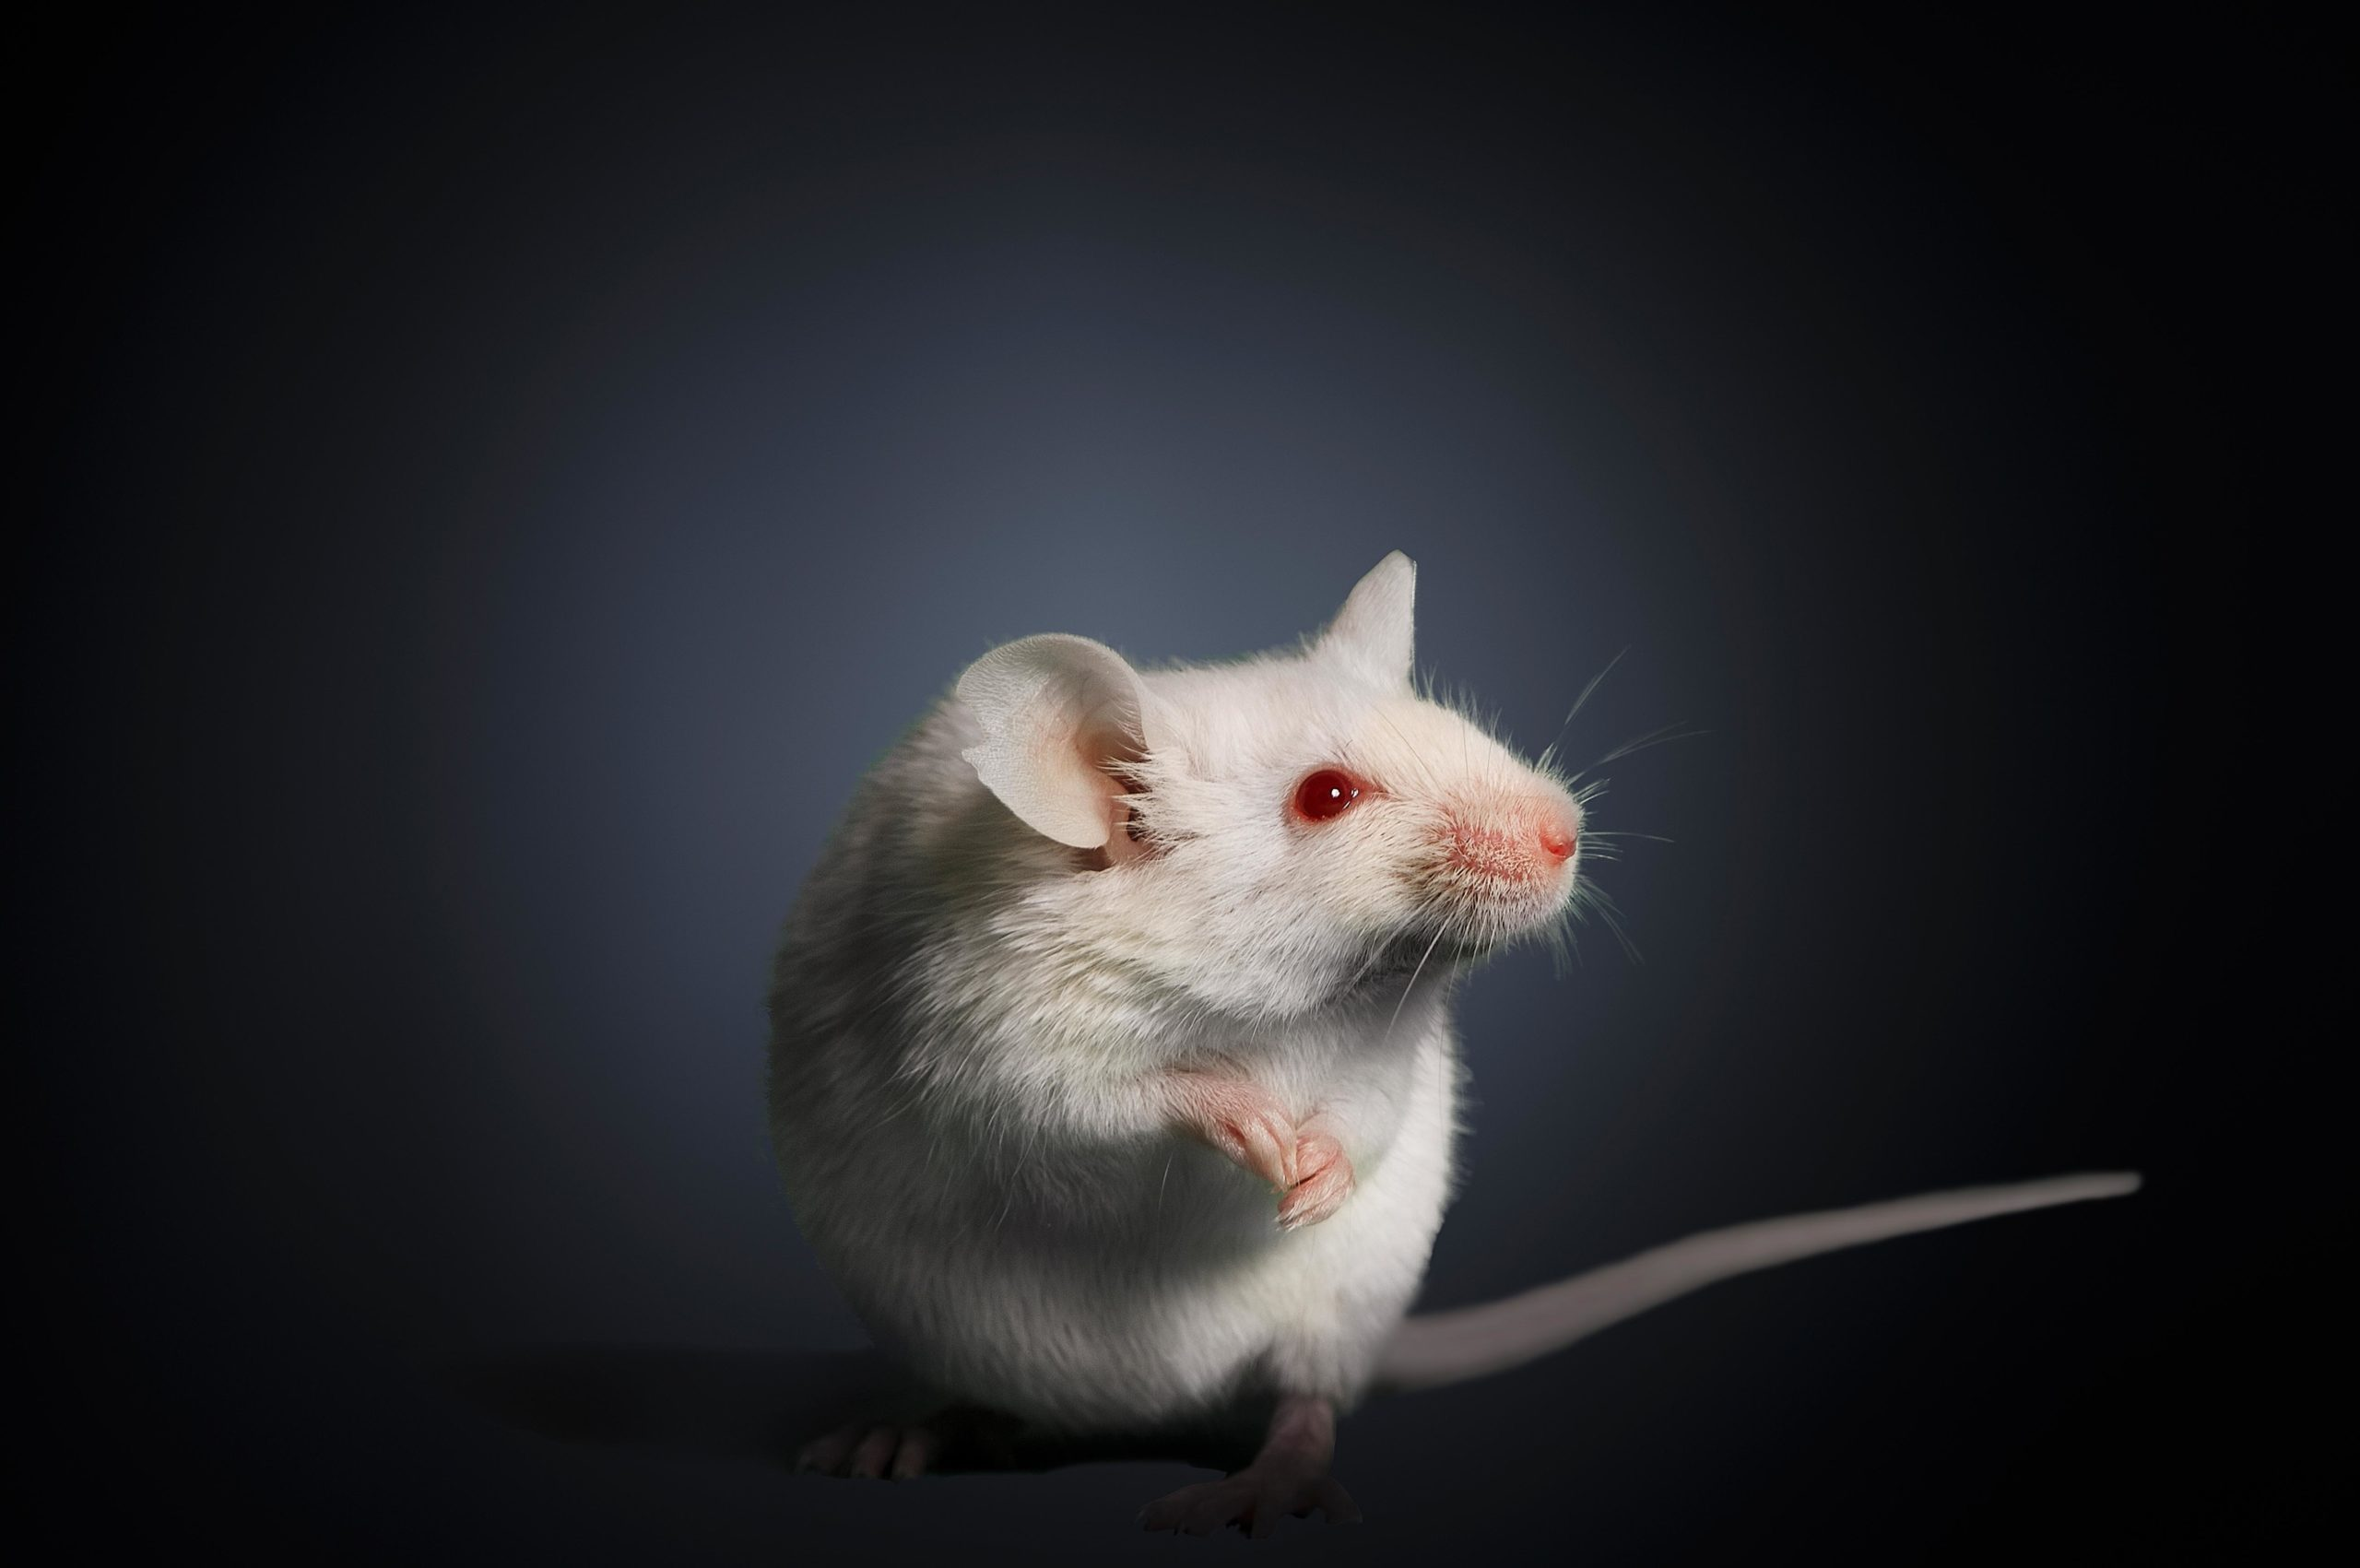 Autistic Traits in Mice Associated with Blood Vessel Defects